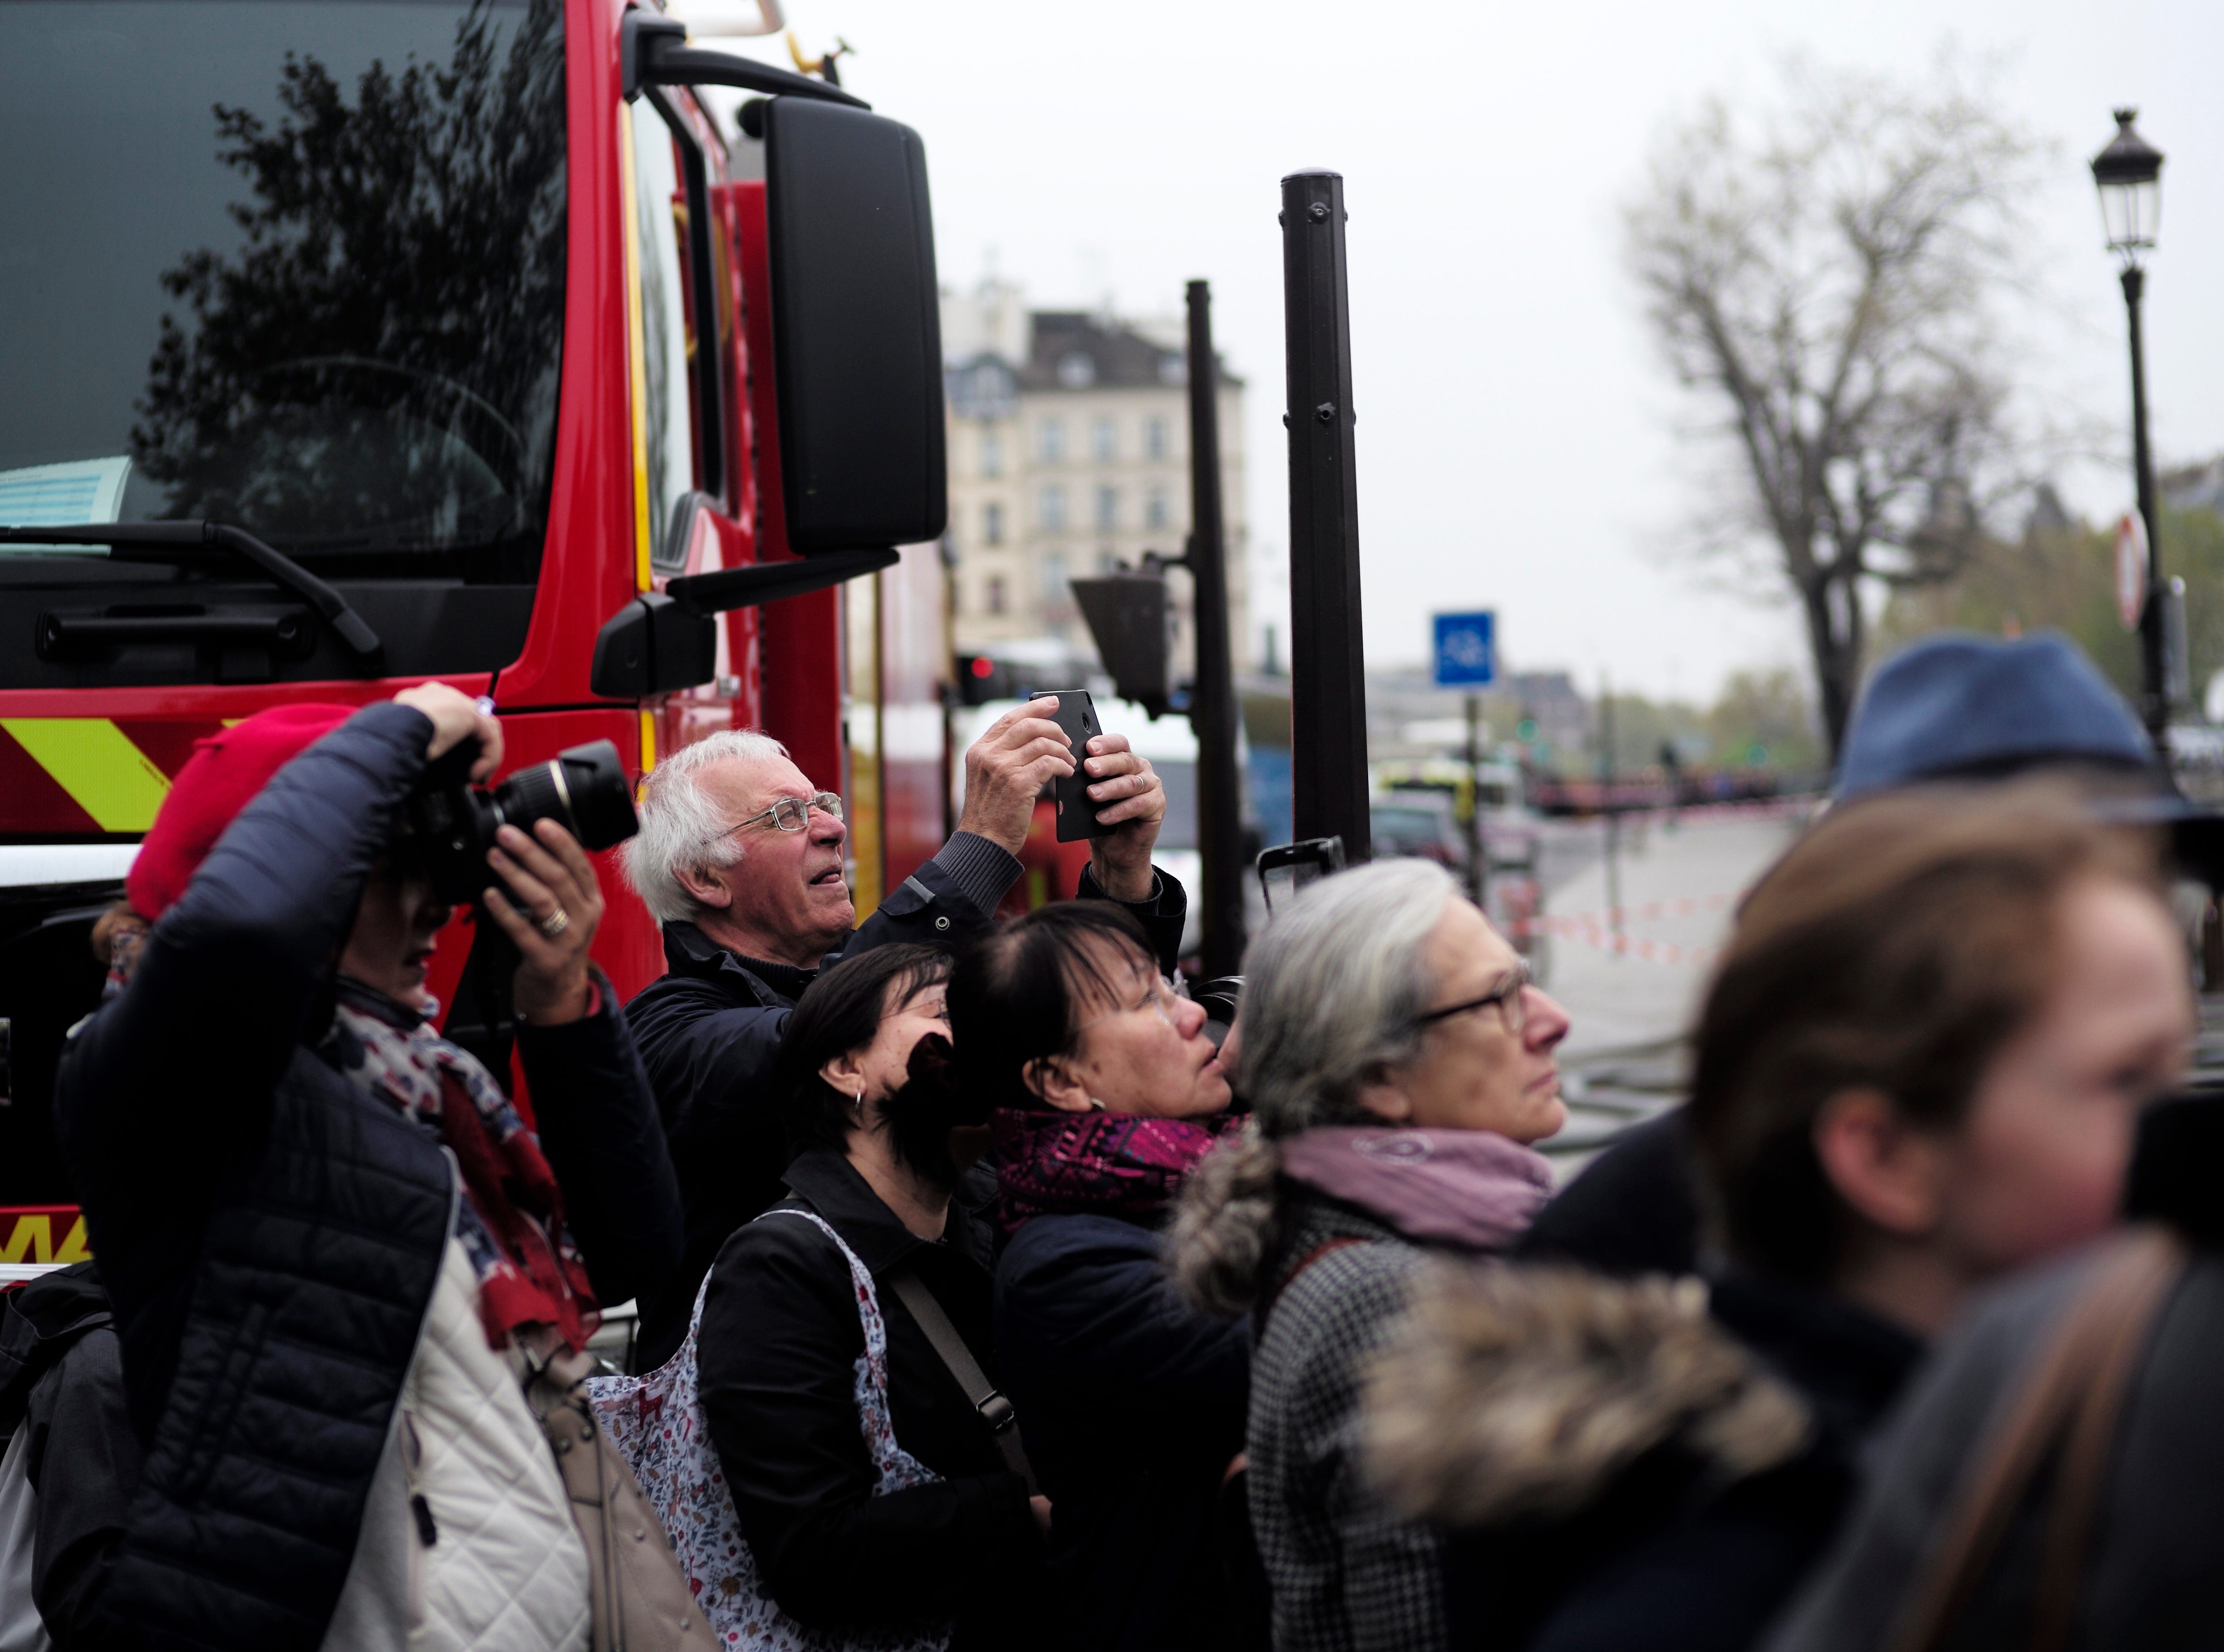 People watch and photograph the Notre Dame cathedral after the fire in Paris, Tuesday, April 16, 2019. Experts are assessing the blackened shell of Paris' iconic Notre Dame cathedral to establish next steps to save what remains after a devastating fire destroyed much of the almost 900-year-old building. With the fire that broke out Monday evening and quickly consumed the cathedral now under control, attention is turning to ensuring the structural integrity of the remaining building. (AP Photo/Kamil Zihnioglu)